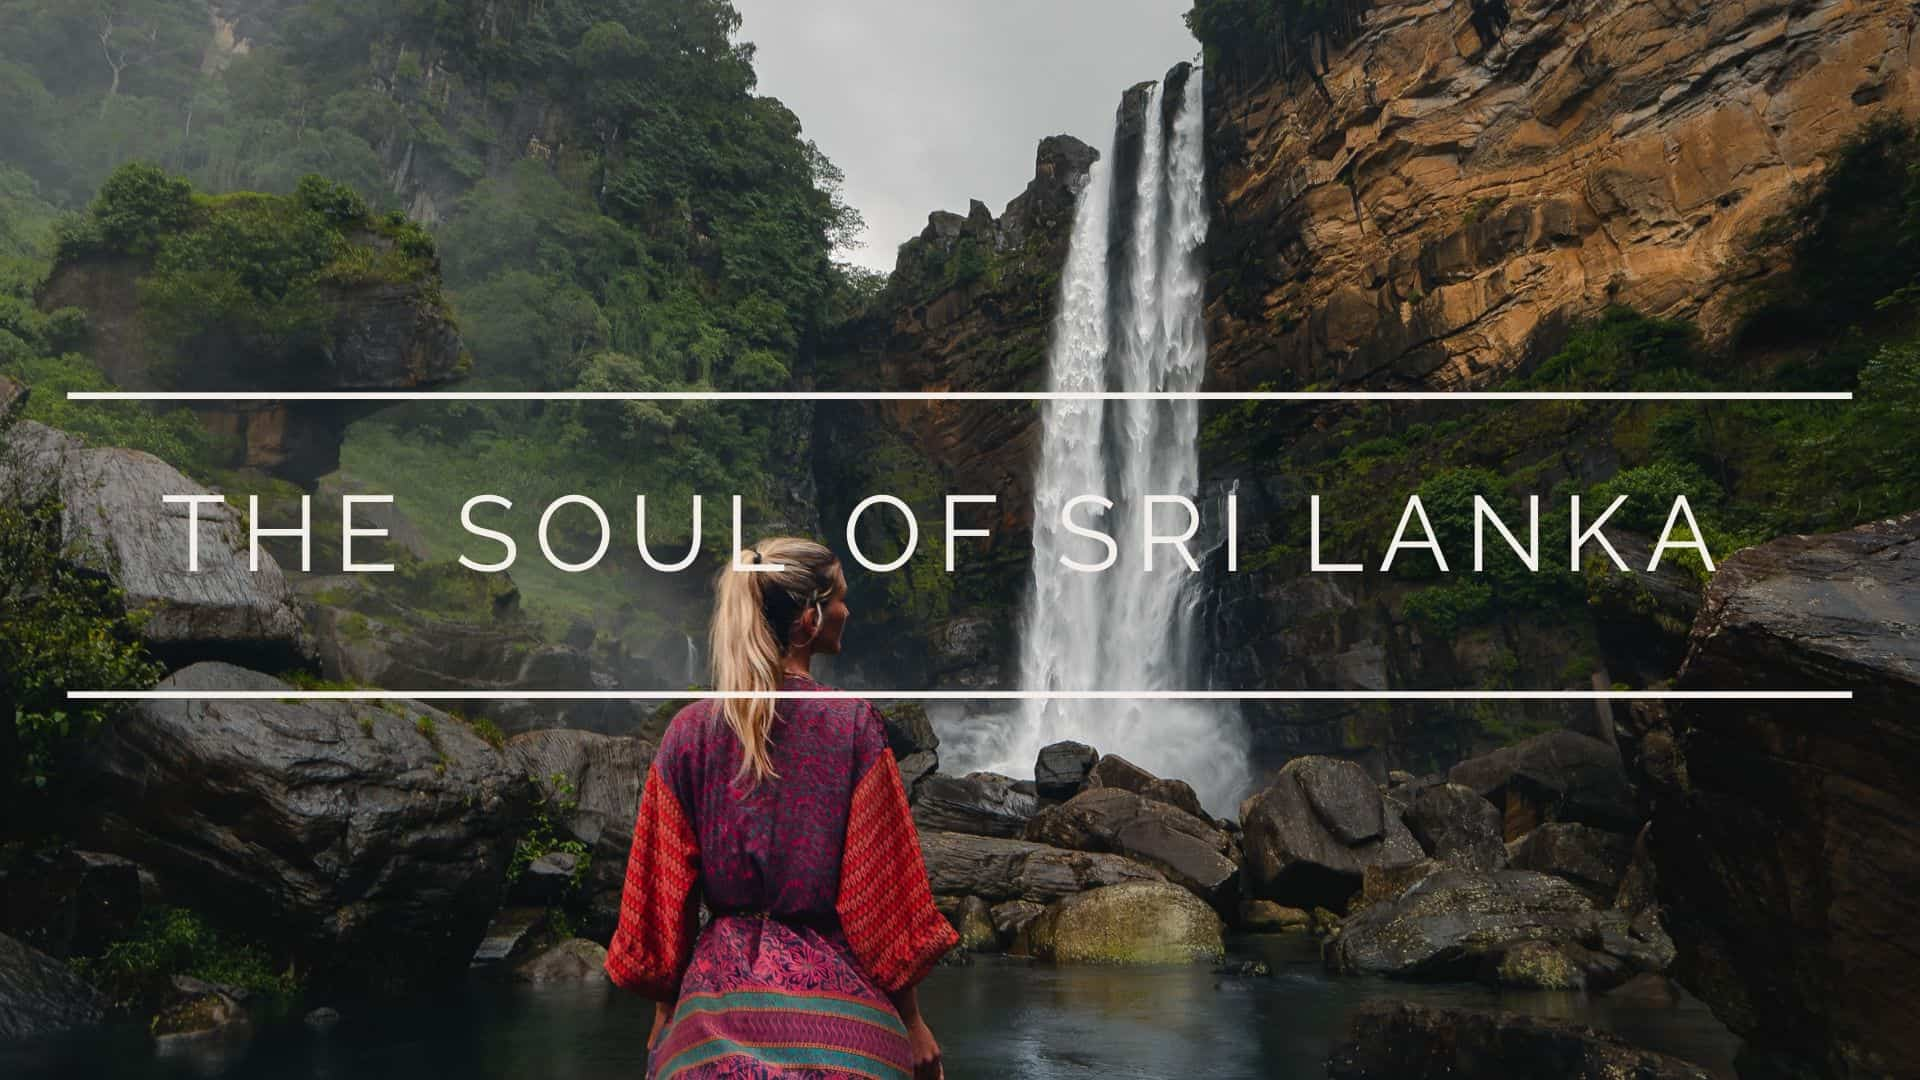 THE-SOUL-OF-SRI-LANKA